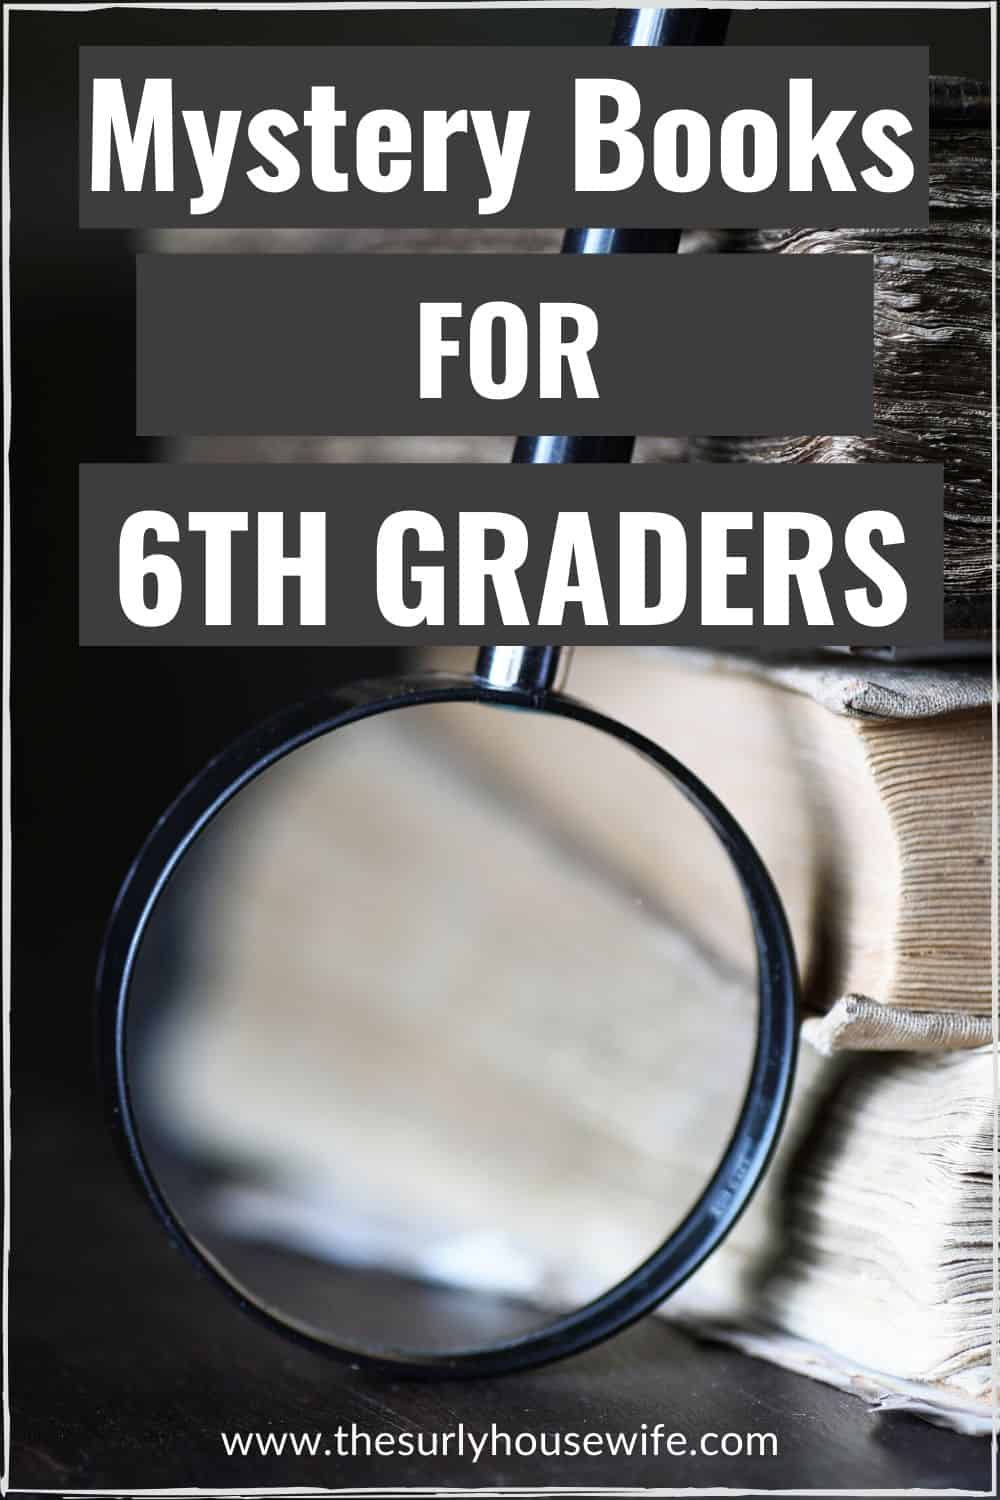 Looking for the best books for 6th graders? Check out this list of mystery books for kids.